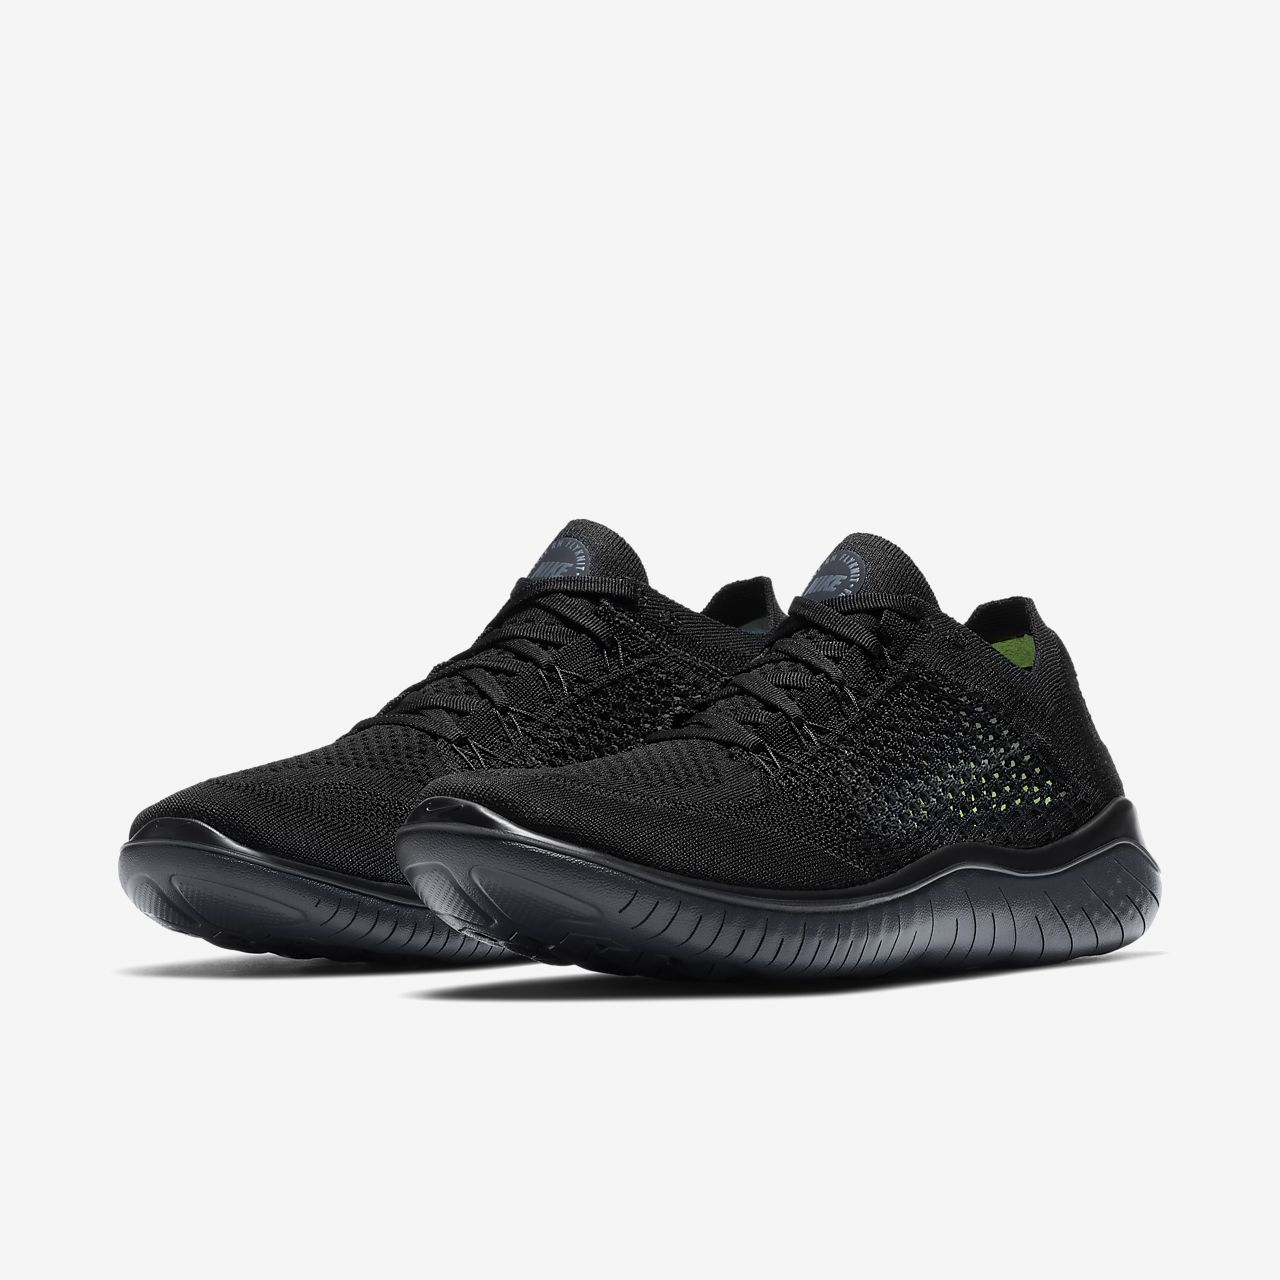 NEW MENS NIKE FREE RN (RUN) FLYKNIT 2018 RUNNING SHOES TRAINERS BLACK / ANTHRACI